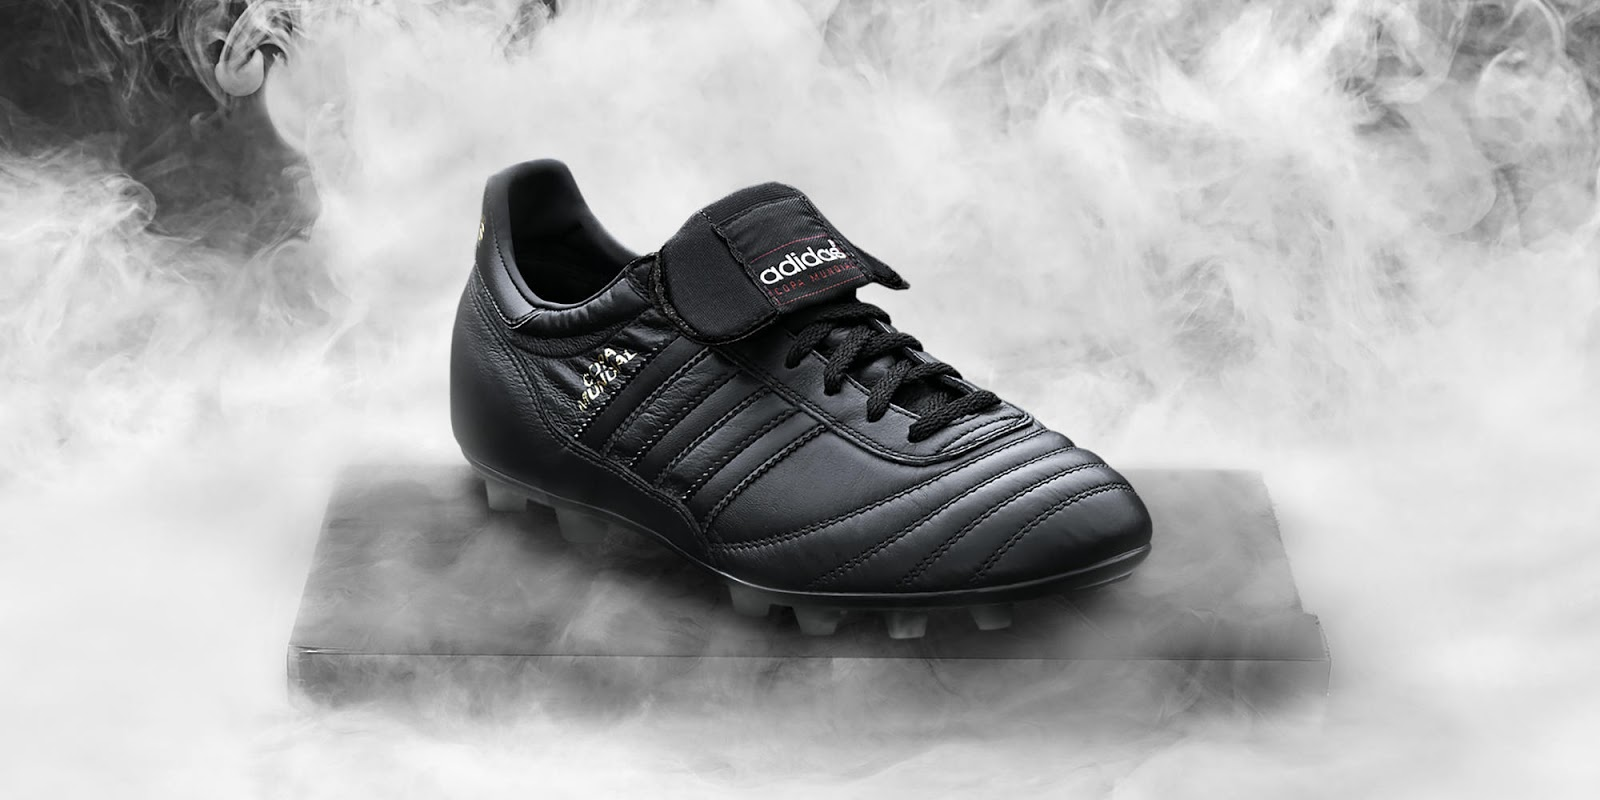 adidas copa mundial blackout for sale